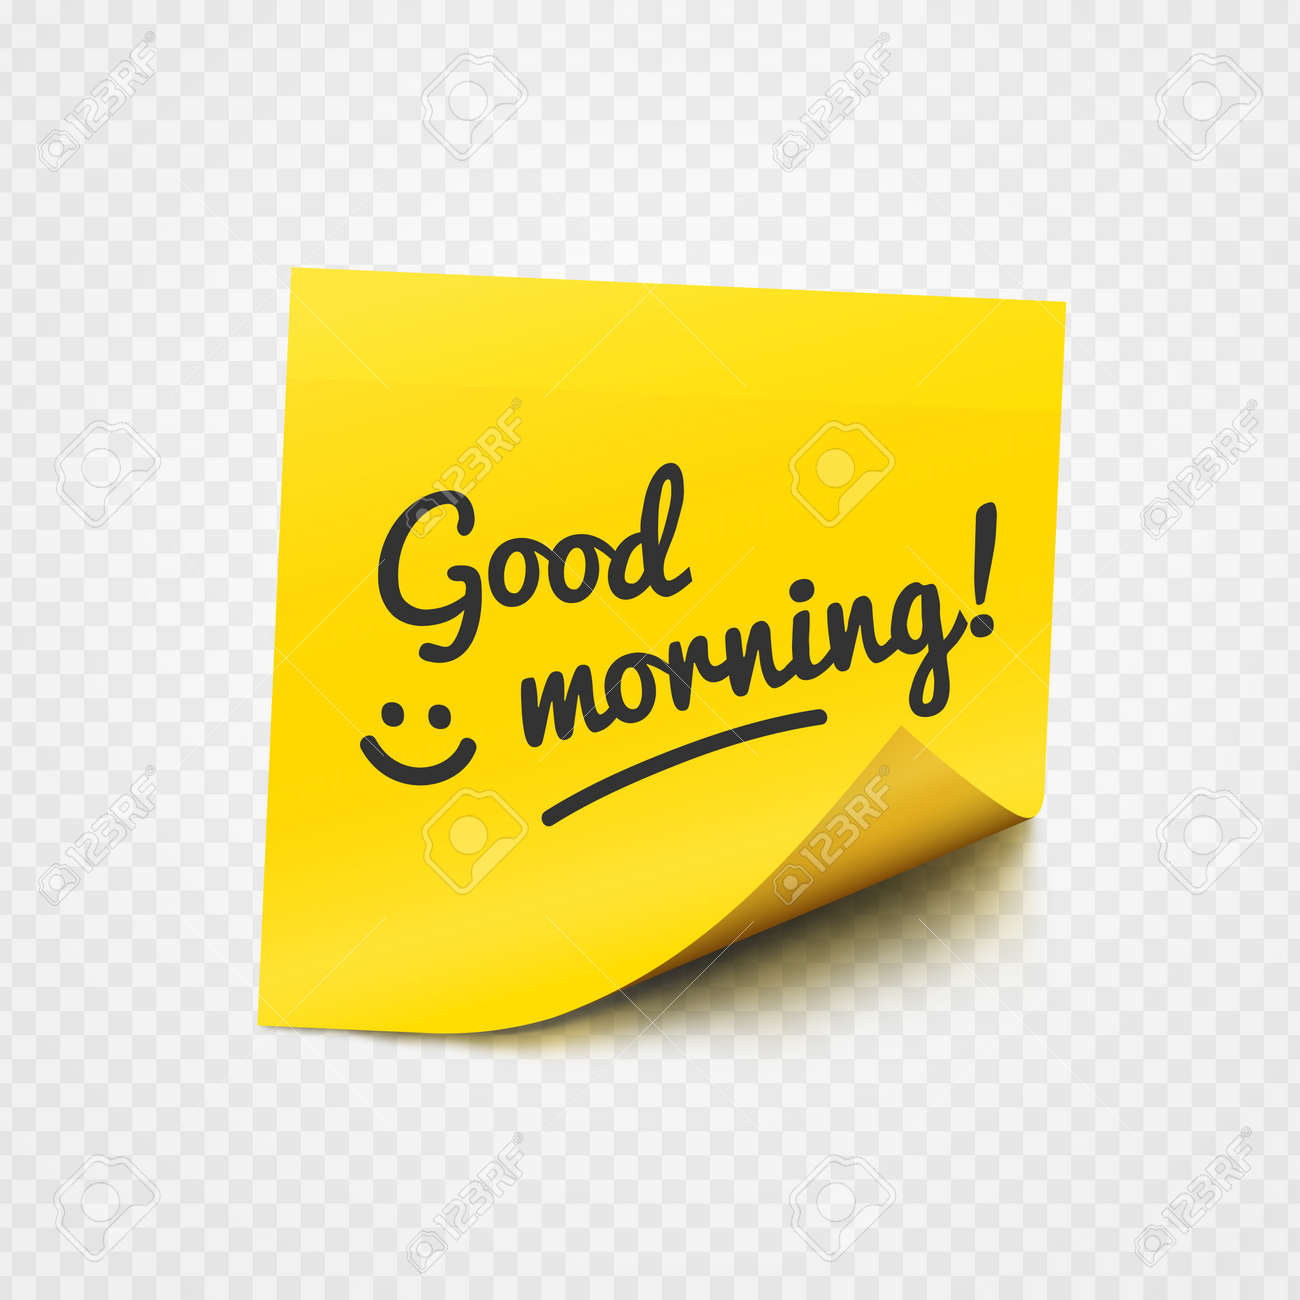 Good Morning Text And Smile Sign On Yellow Sticker Over Transparent